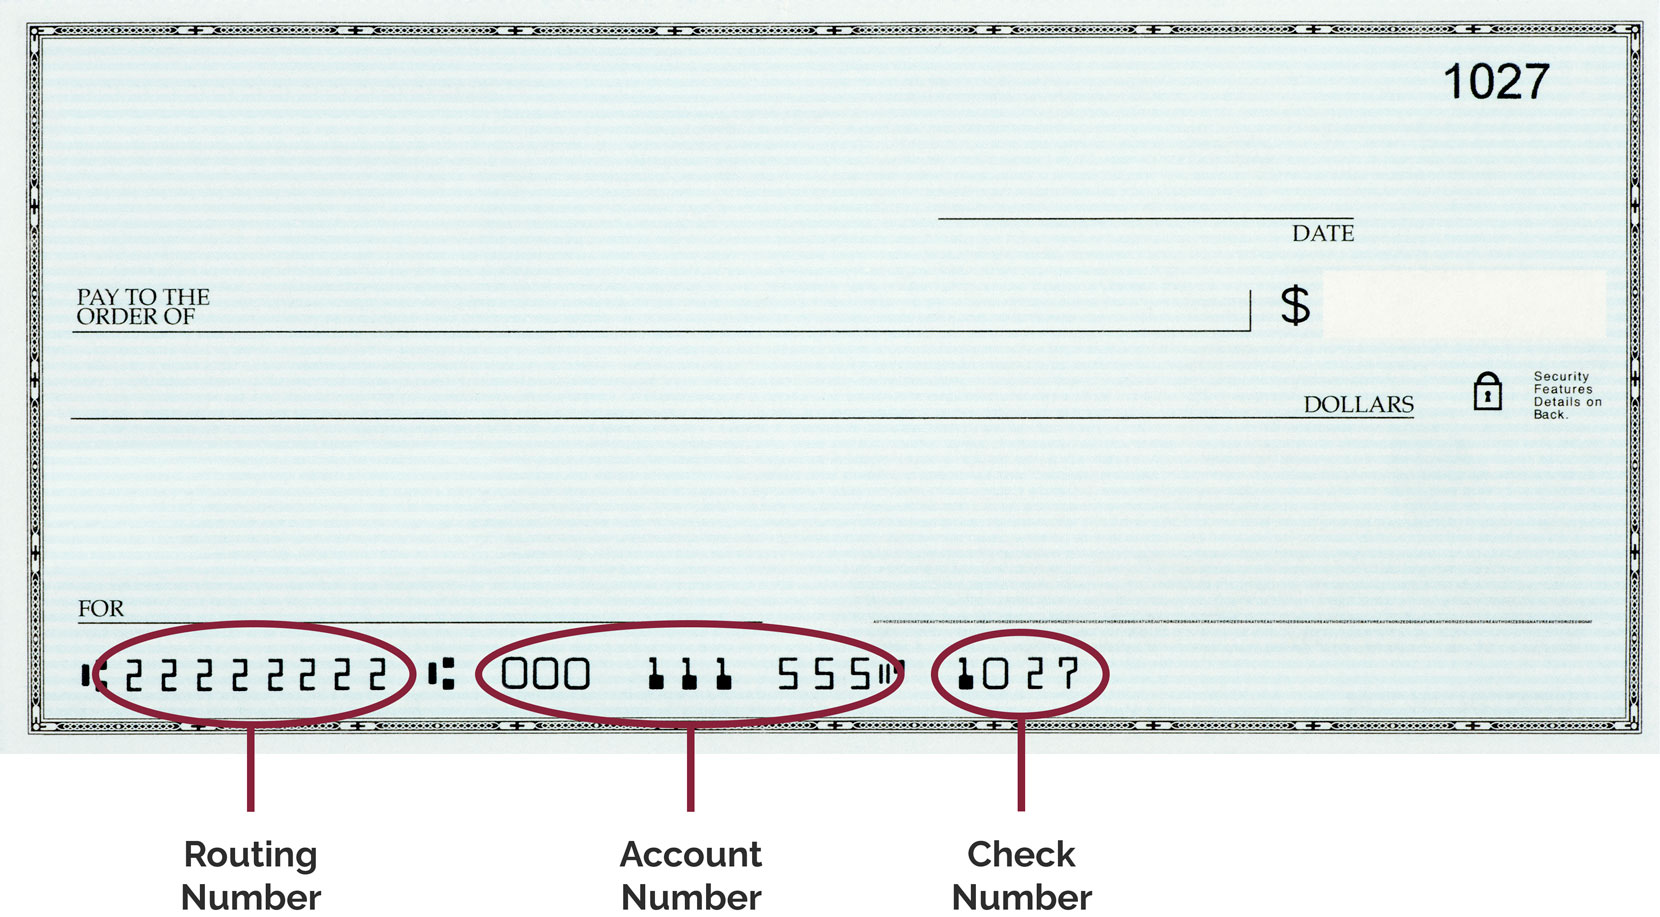 Check with routing number highlighted in lower left